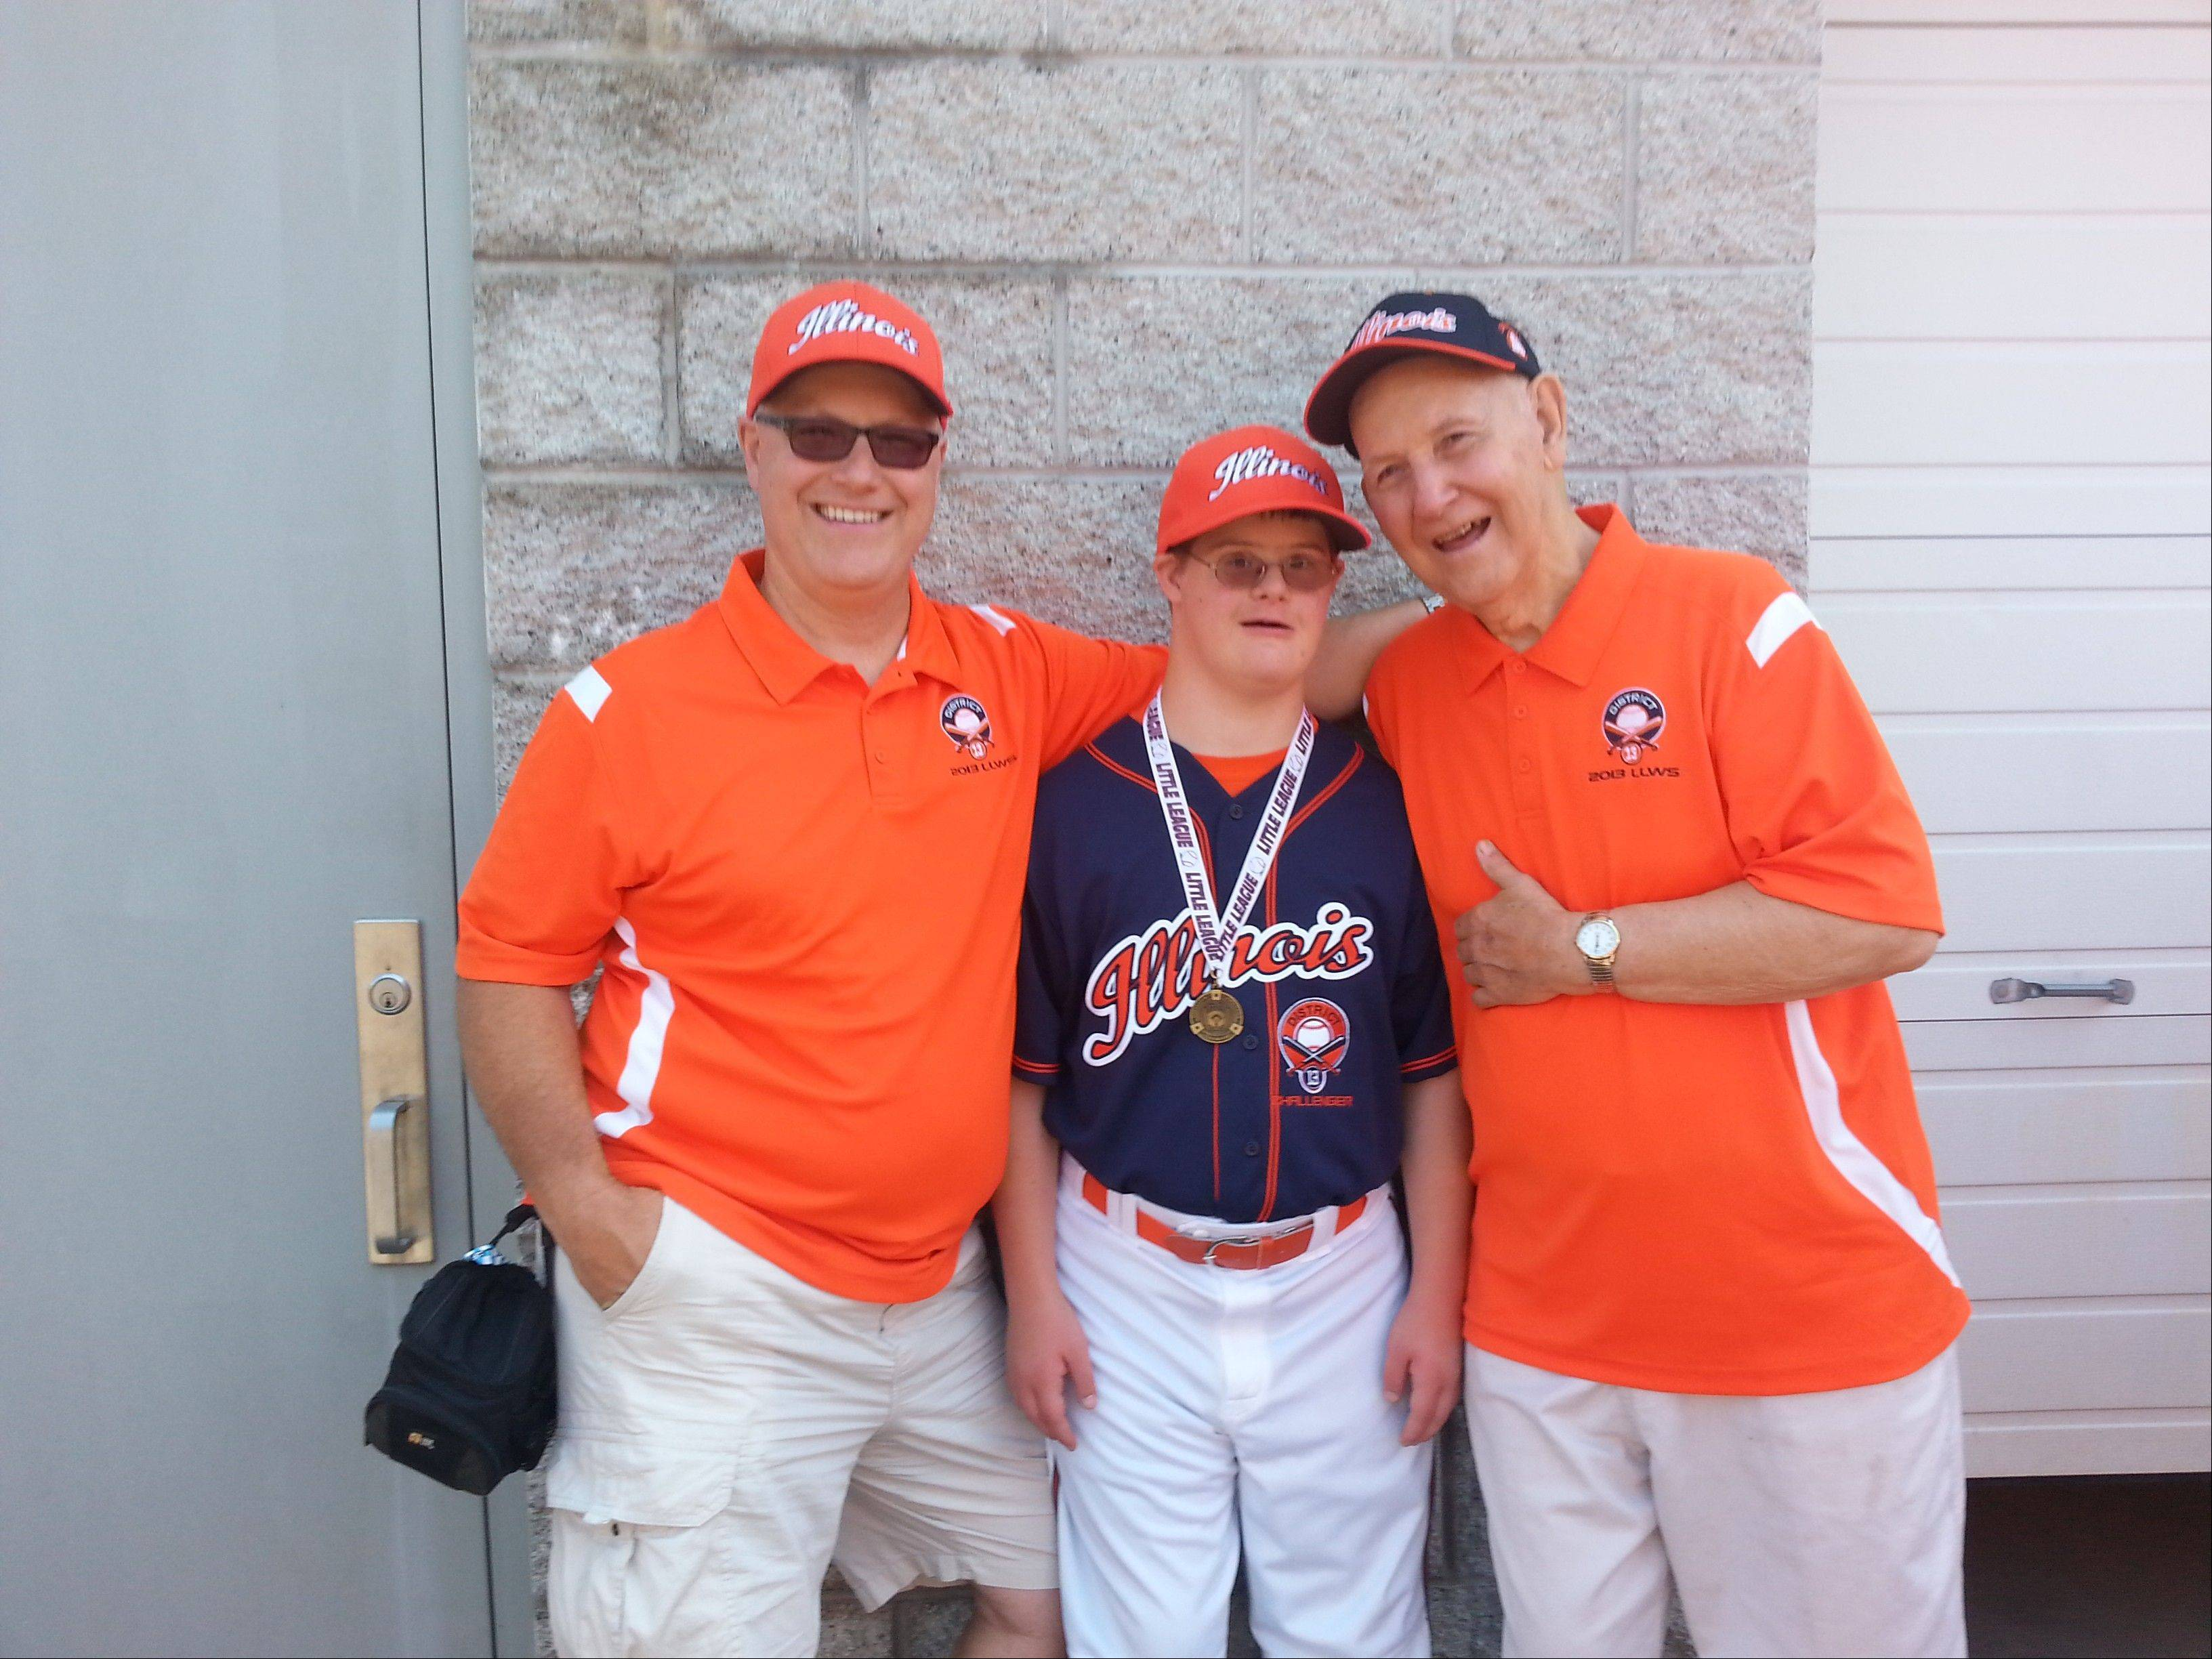 Sharing a moment that was three generations and 41 years in the making, former Little League Baseball World Series player Peter Vargulich, left, of St. Charles, and his father and former coach Tom Vargulich, right, cheer on Tommy Vargulich, 16. Tommy became the third generation to play on that famous field with his participation Saturday in an exhibition game featuring young people with disabilities.